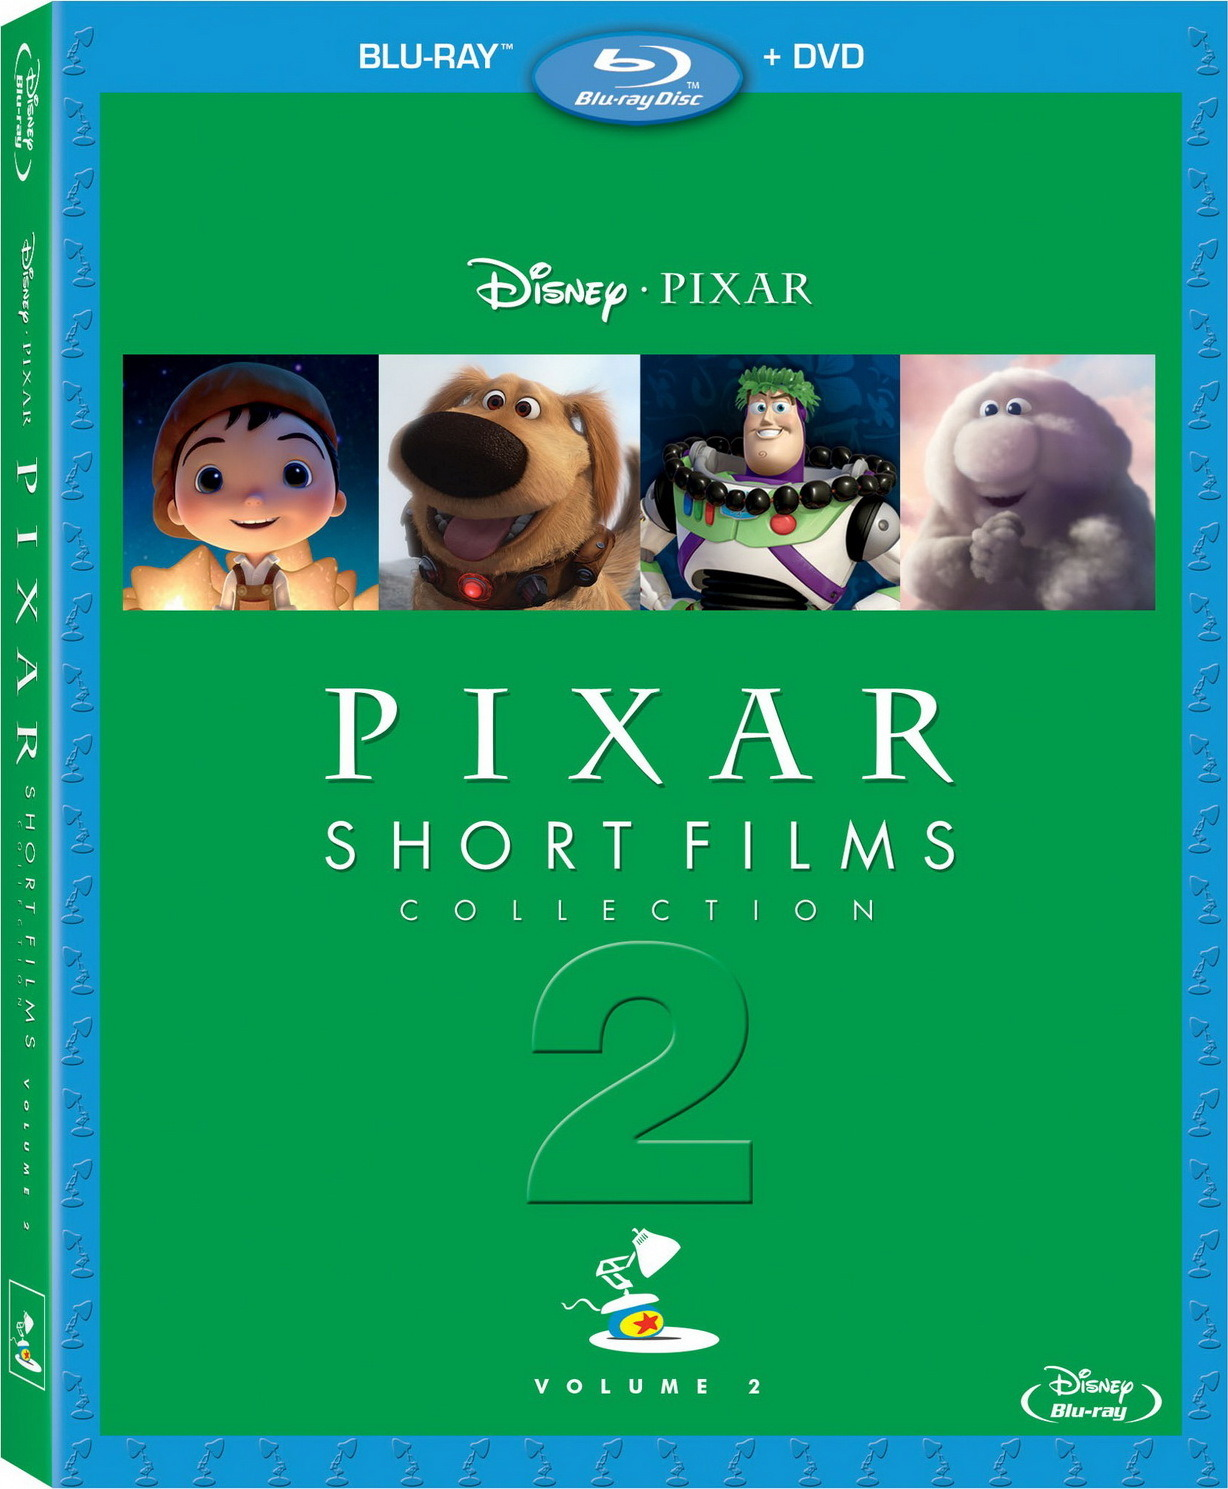 The 2007-2012 Pixar shorts are available November 13th.